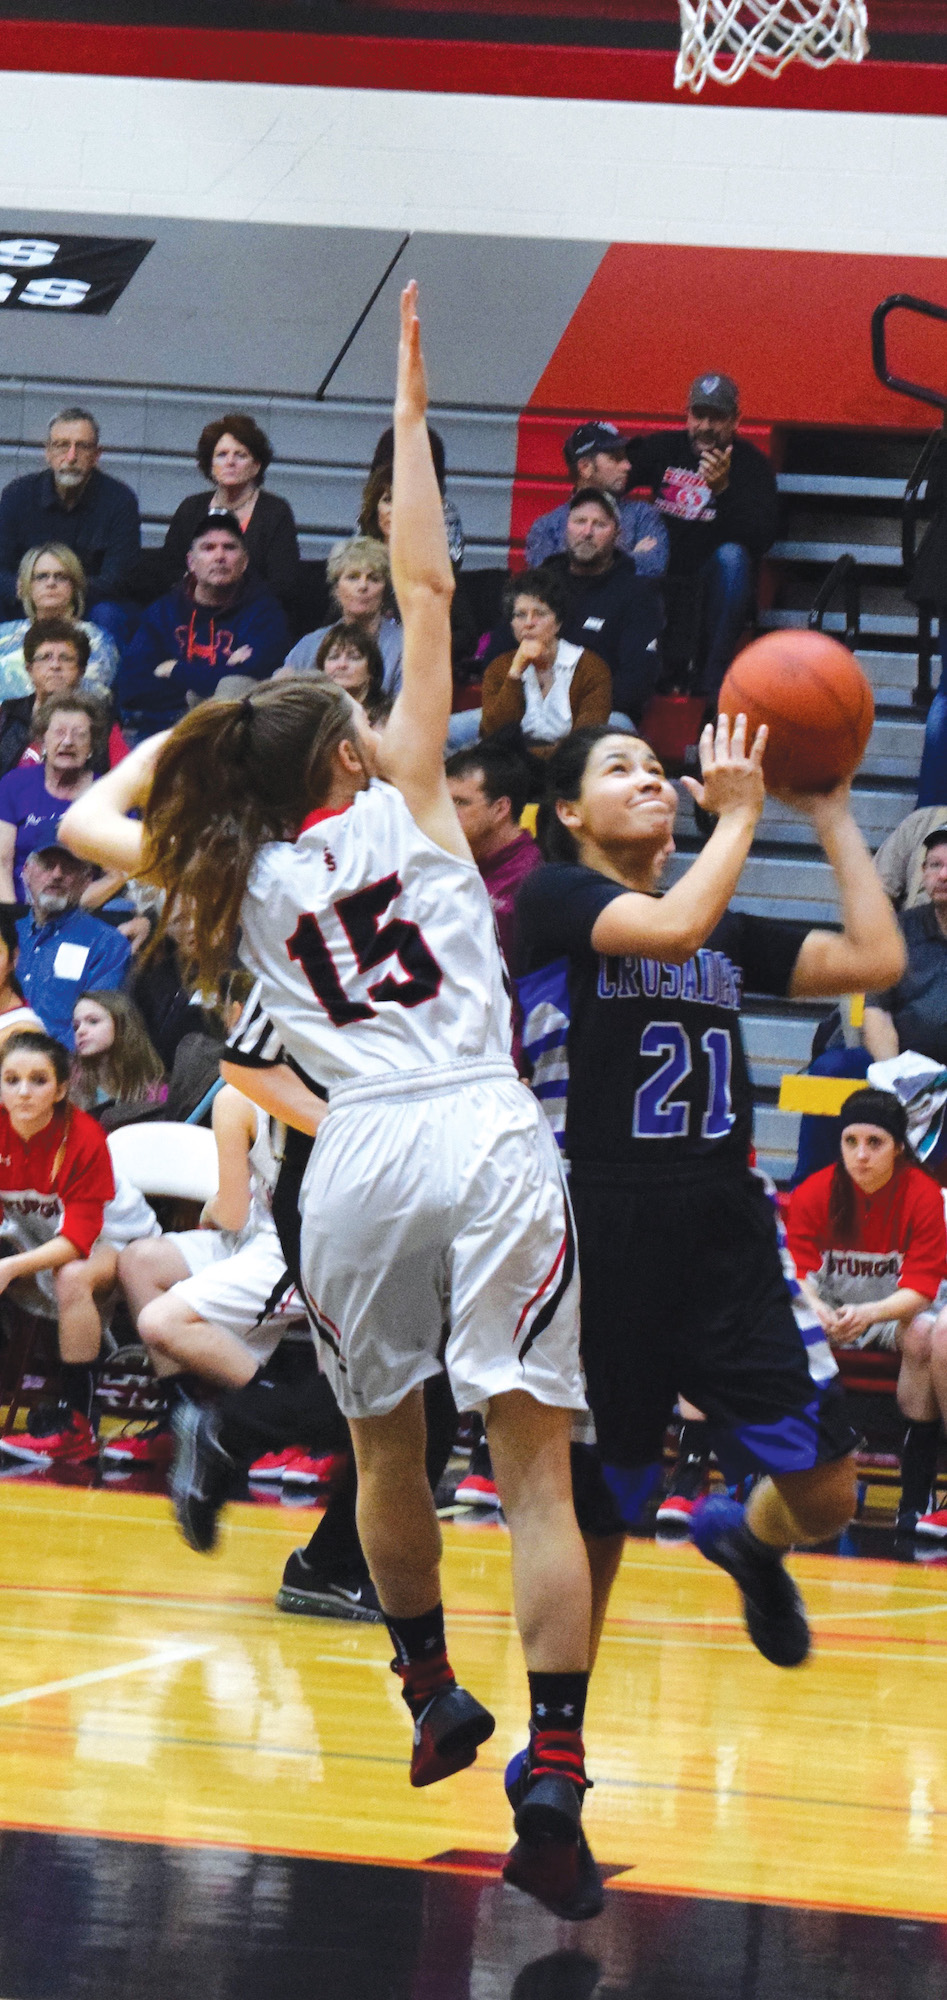 Native Sun News: The future of Lakota basketball in South Dakota